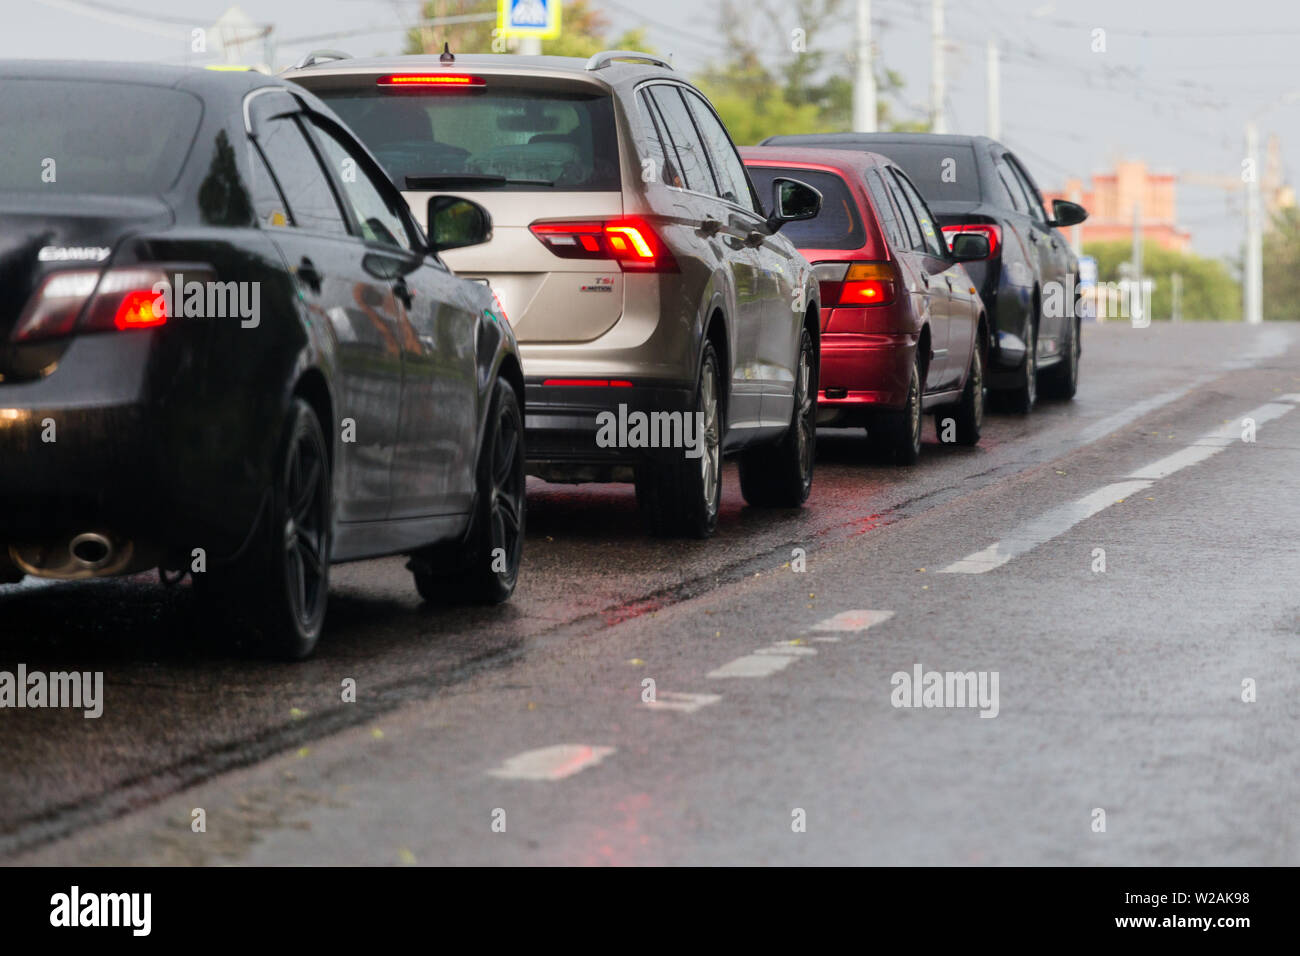 TULA, RUSSIA - JULY 6, 2019: Cars on summer road stopped before crossroads after rain. Selective focus telephoto shot. - Stock Image